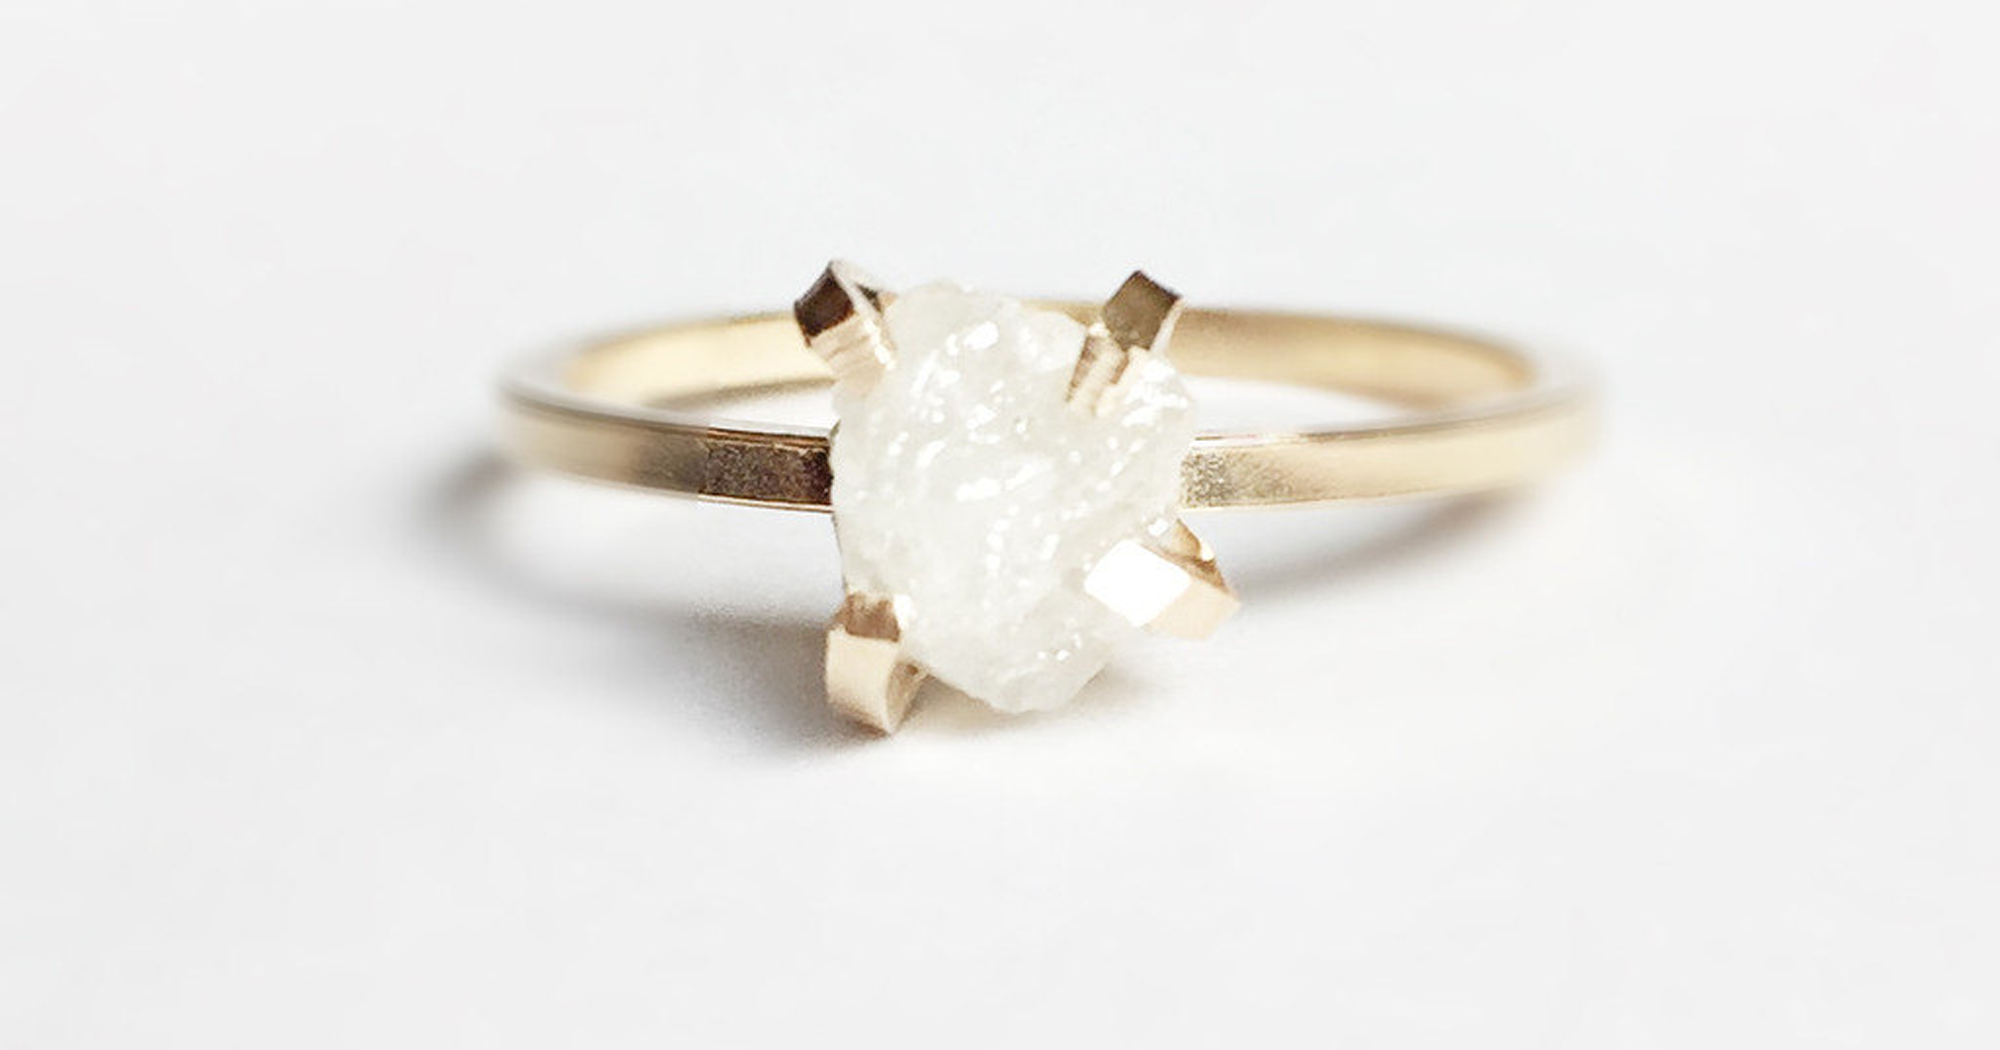 10 Etsy Jewelers You Need To Know About